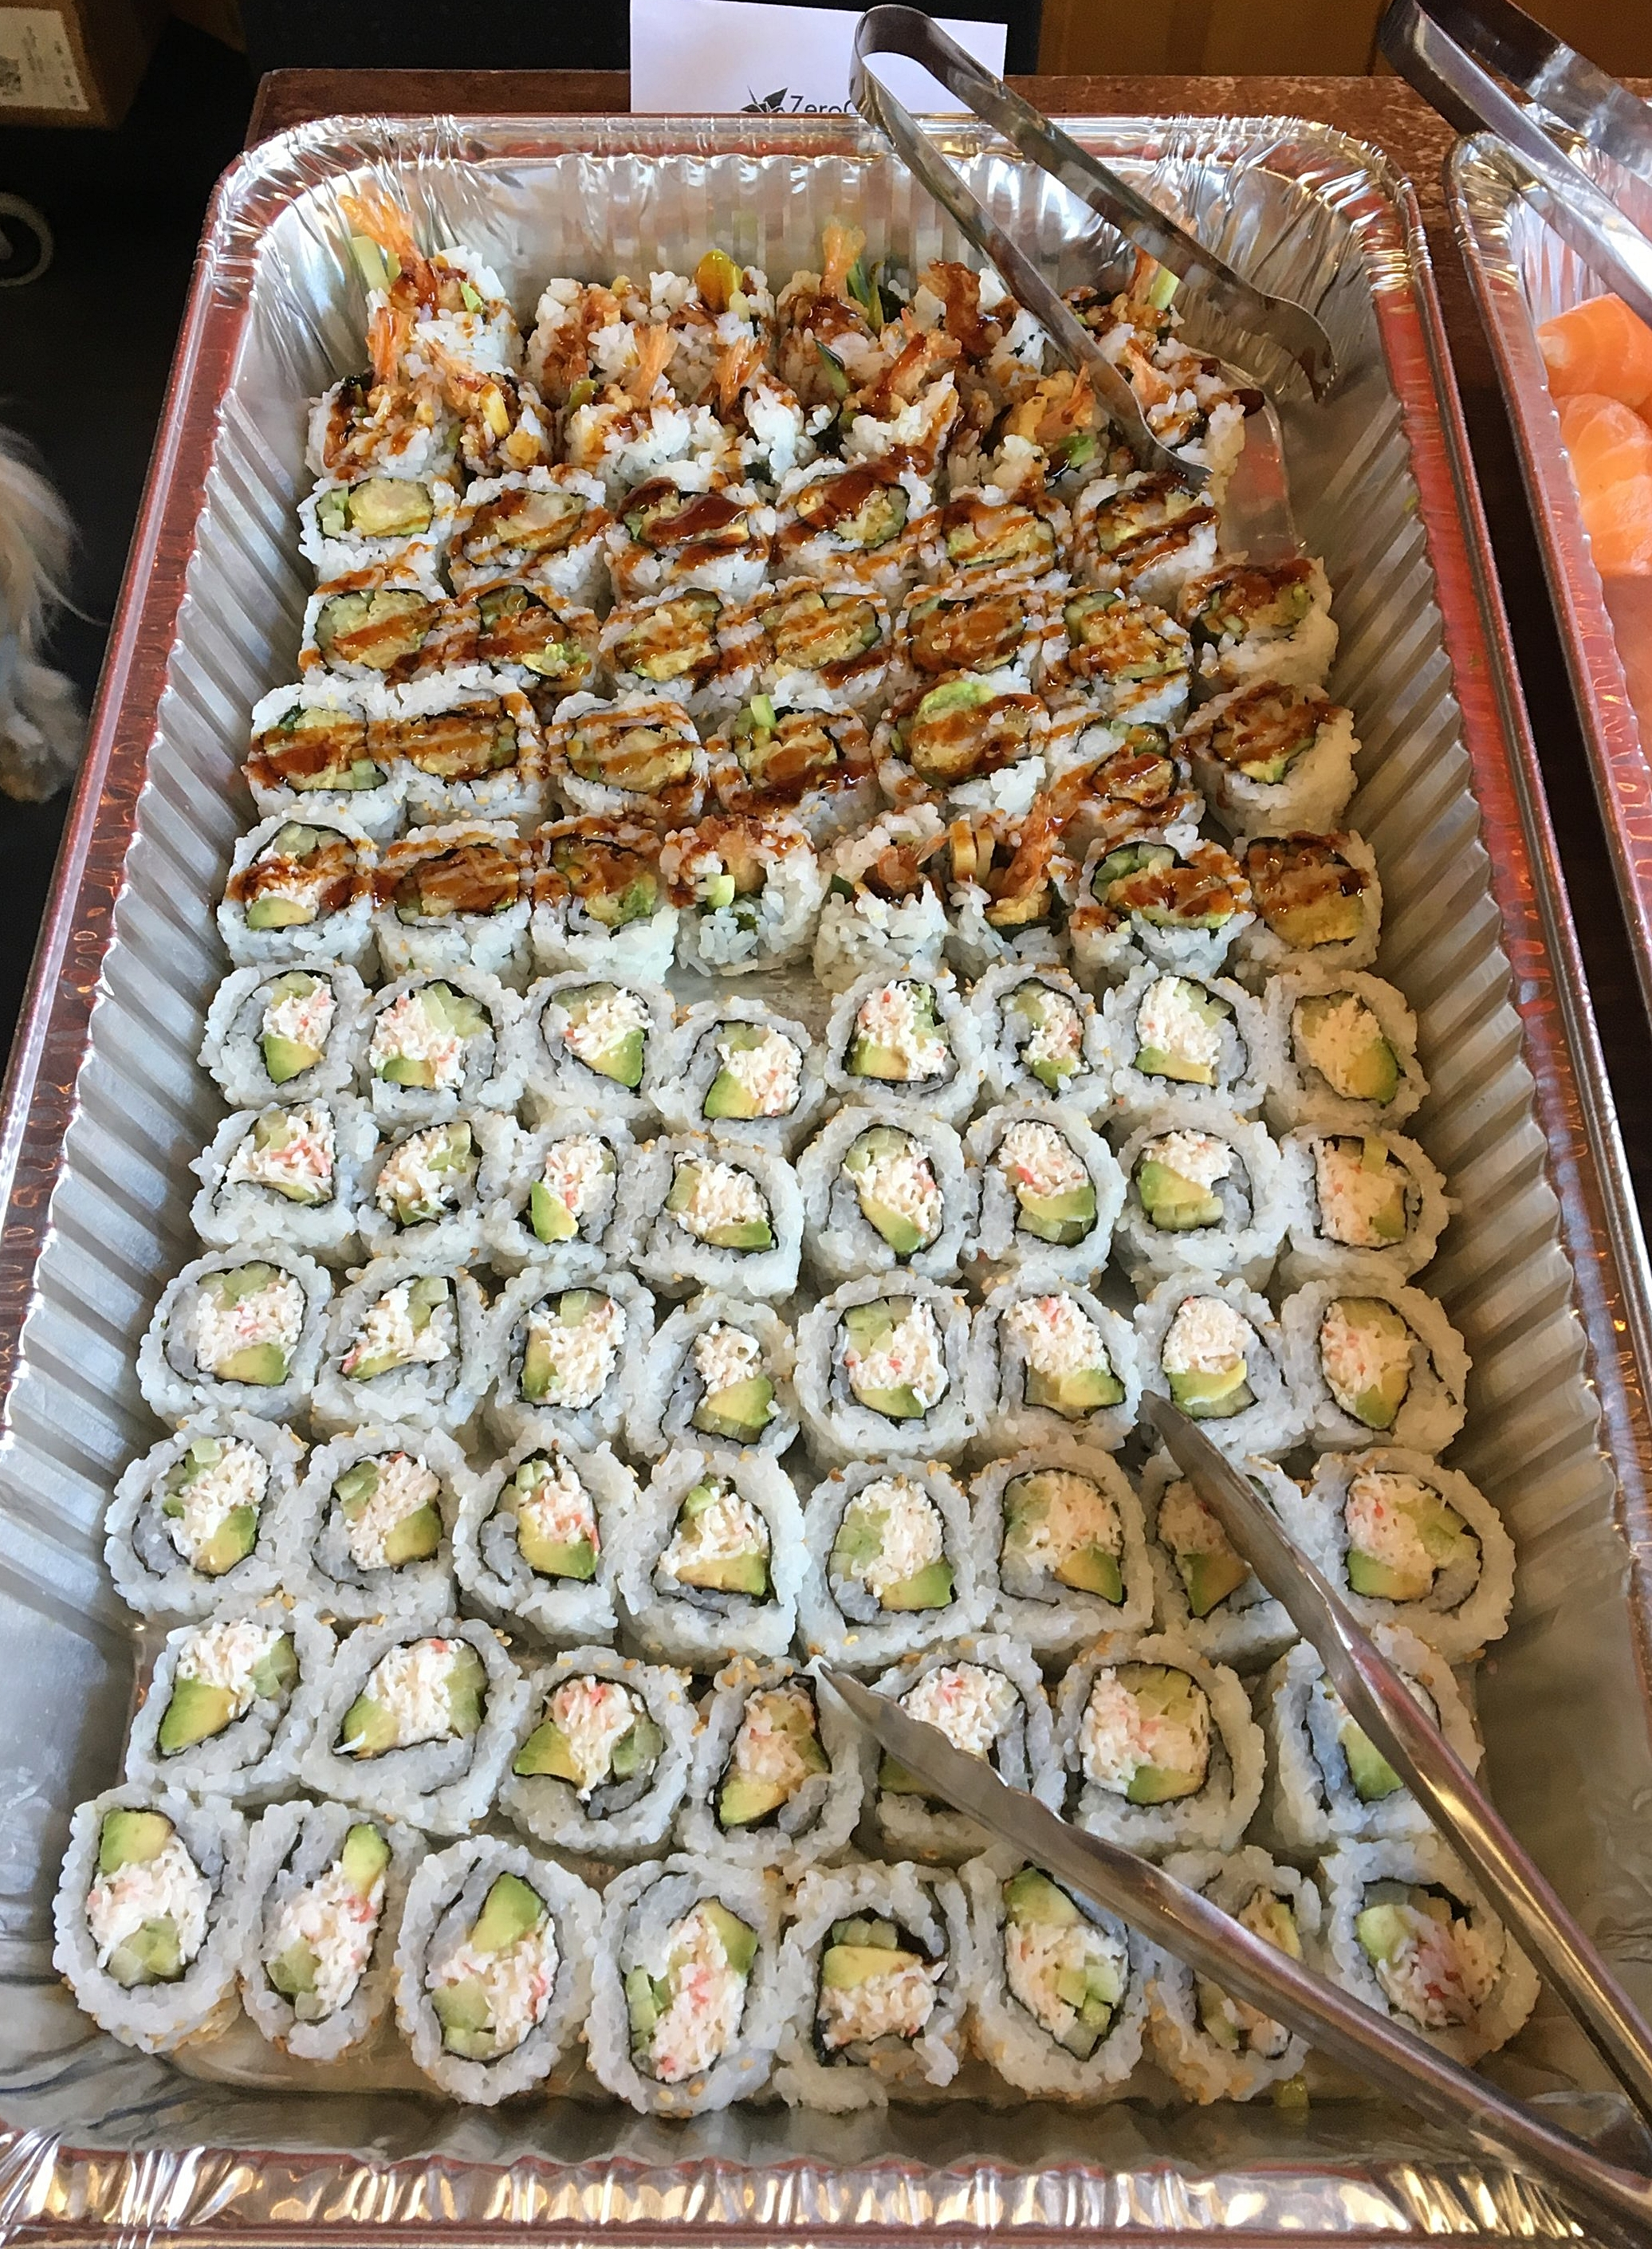 Ready to design your perfect sushi catering menu? - Contact Us today at (415) 655-9496